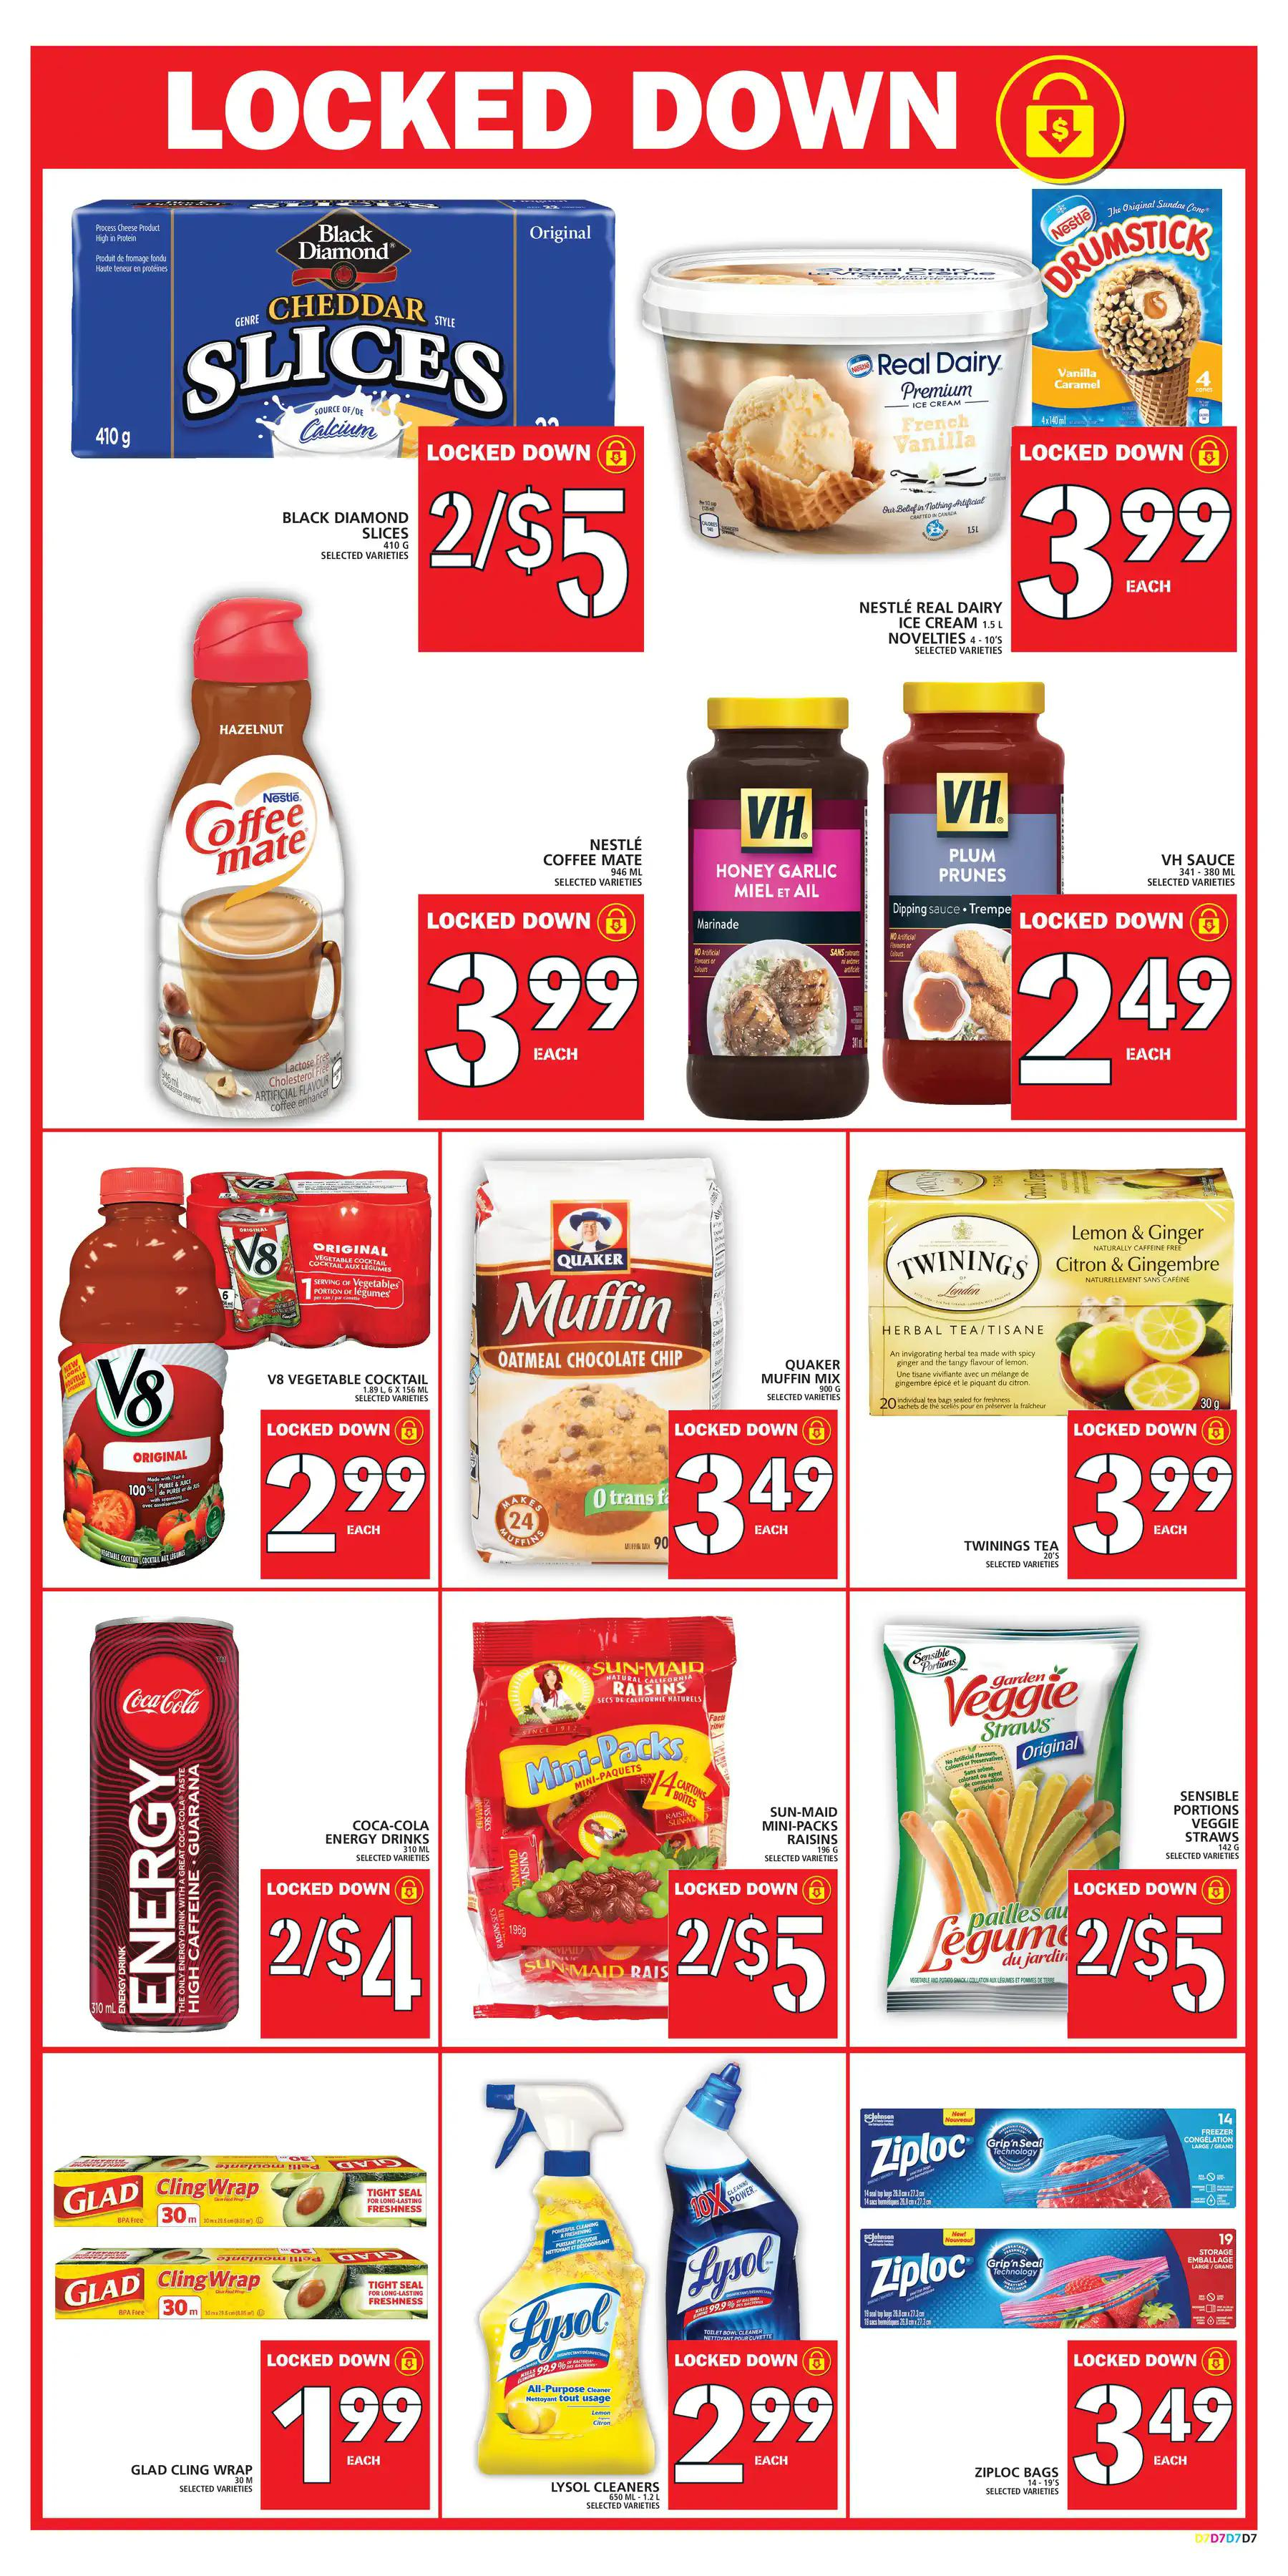 Food Basics - Weekly Flyer Specials - Page 9